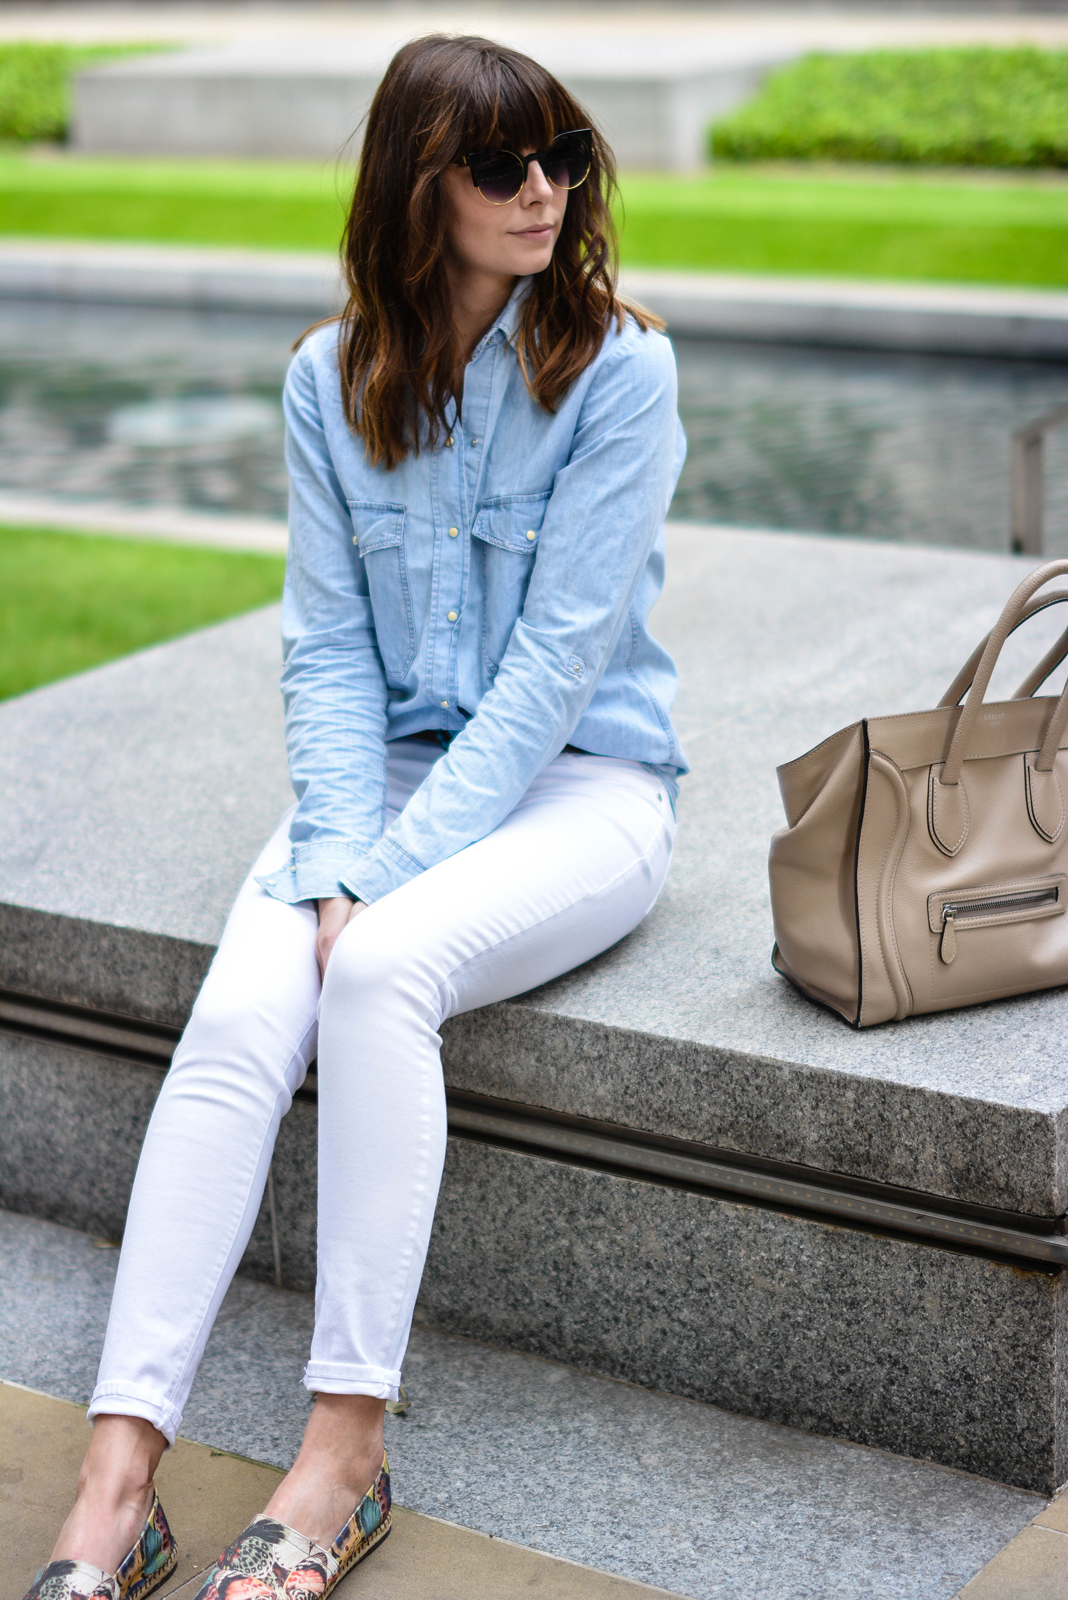 EJSTYLE - Emma Hill, River Island white skinny jeans, Topshop denim shirt, Turquoise brown leather belt, Celine mini luggage nude, Valentino Butterfly espadrilles, summer style